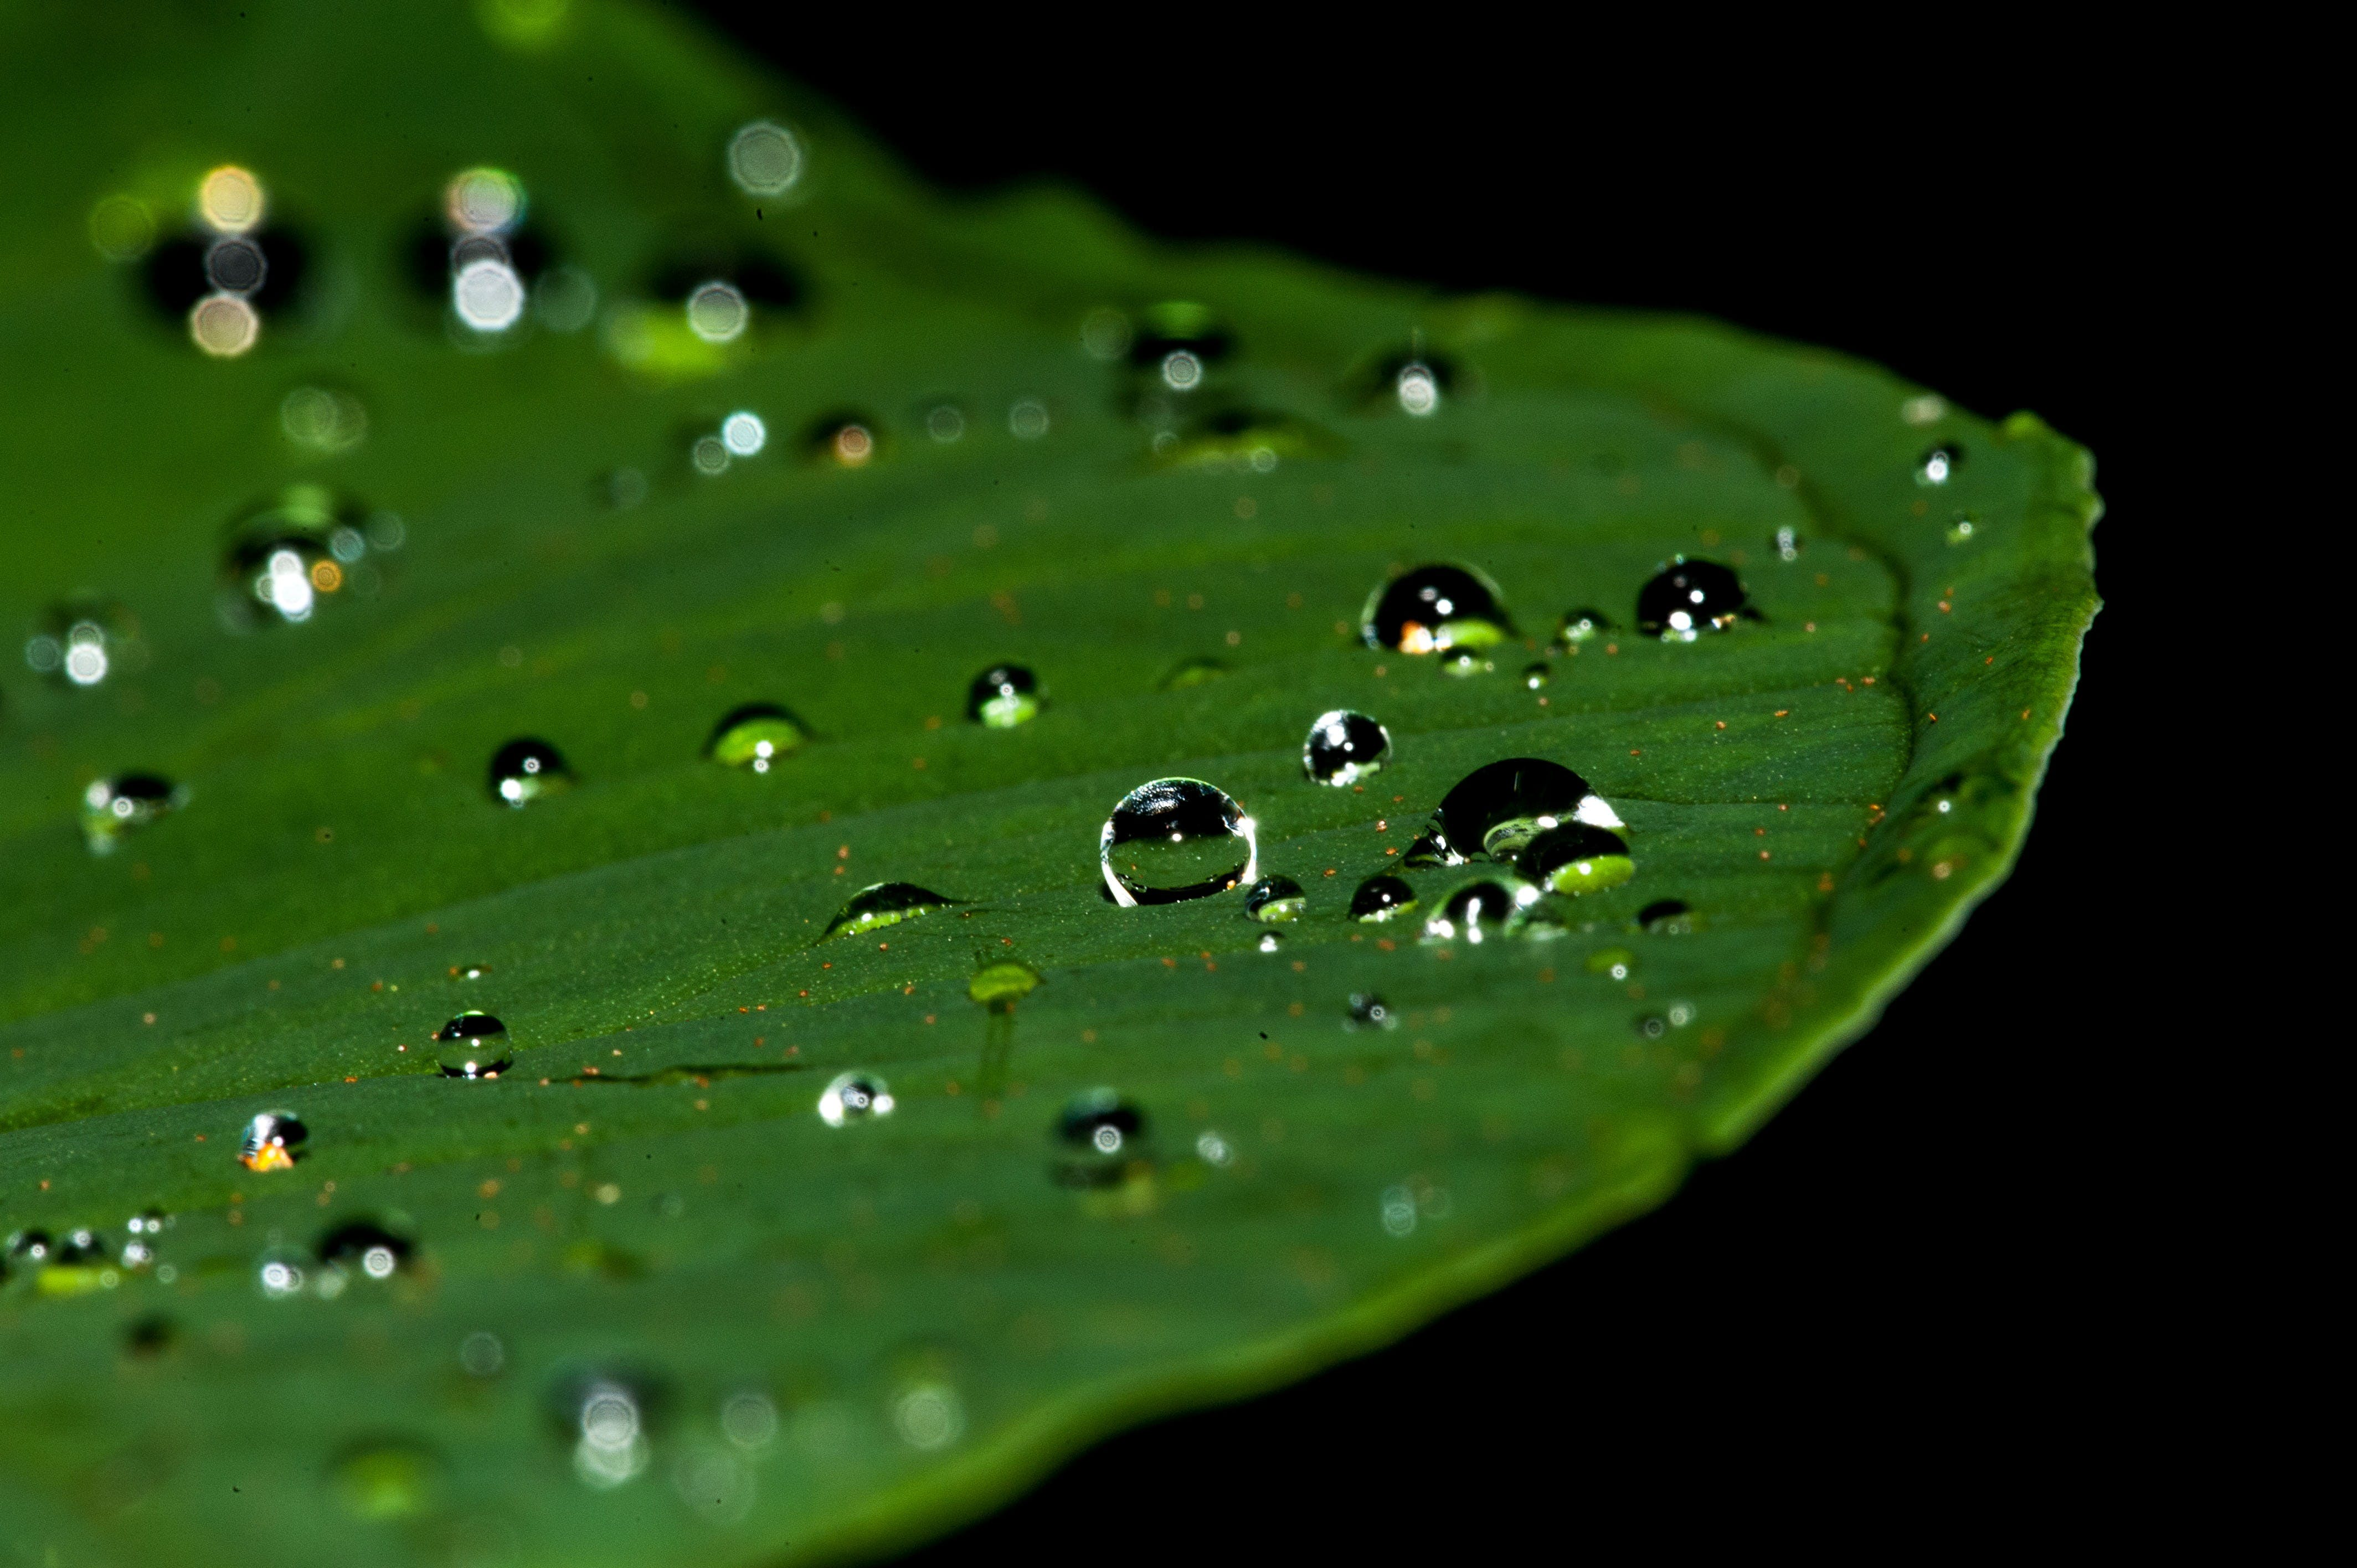 Close Photograpy of Leaf With Water Drop